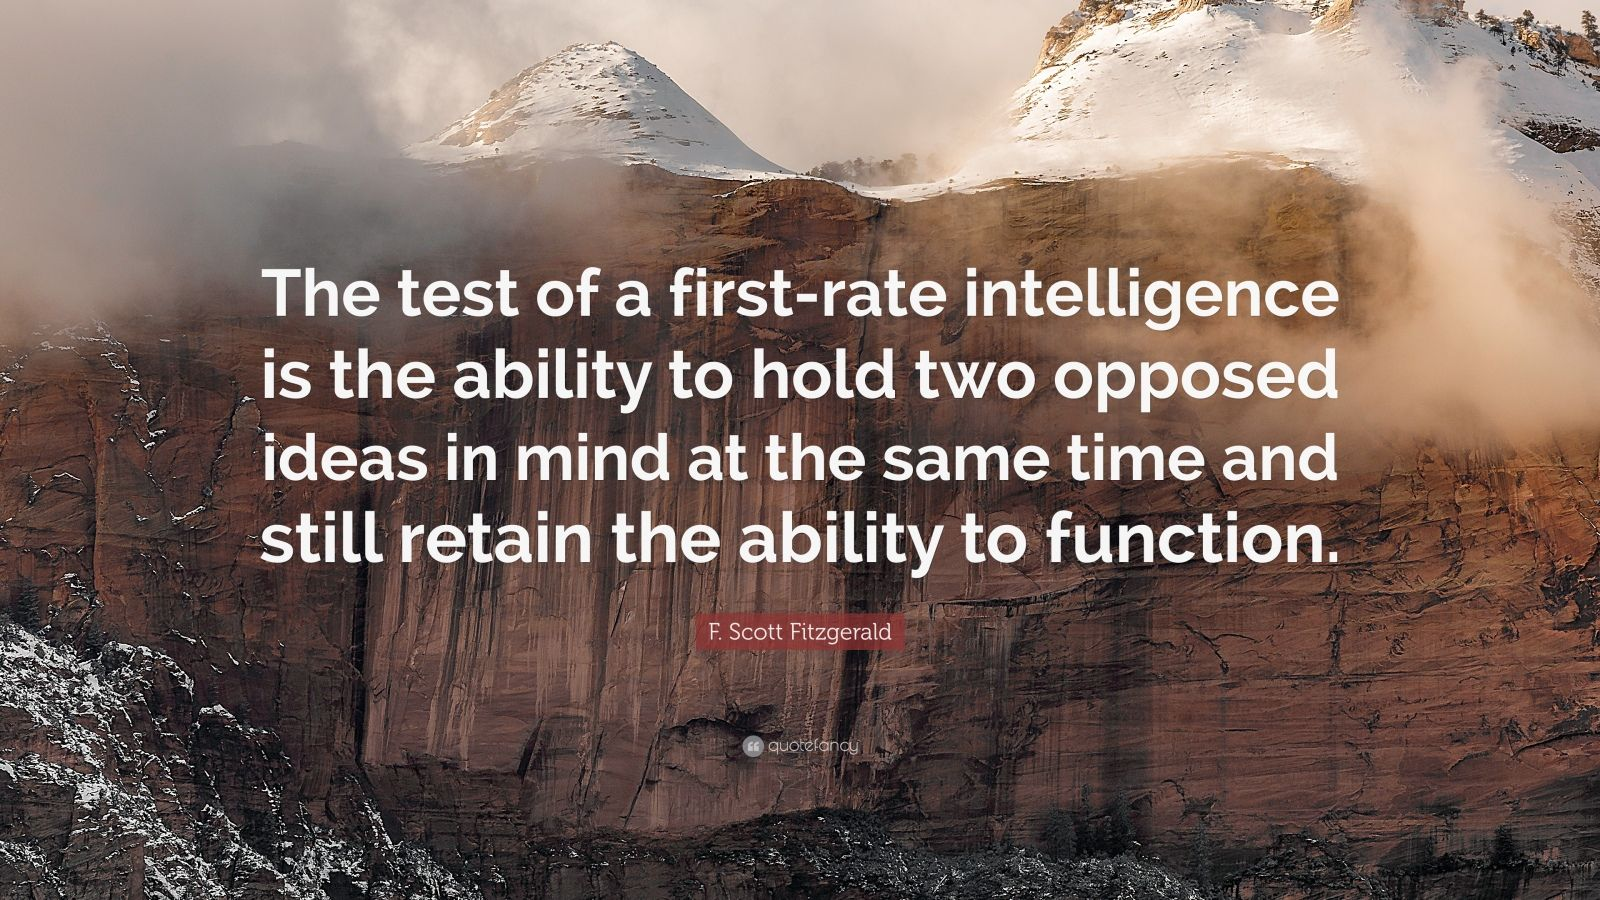 F Scott Fitzgerald Quote The Test Of A First Rate